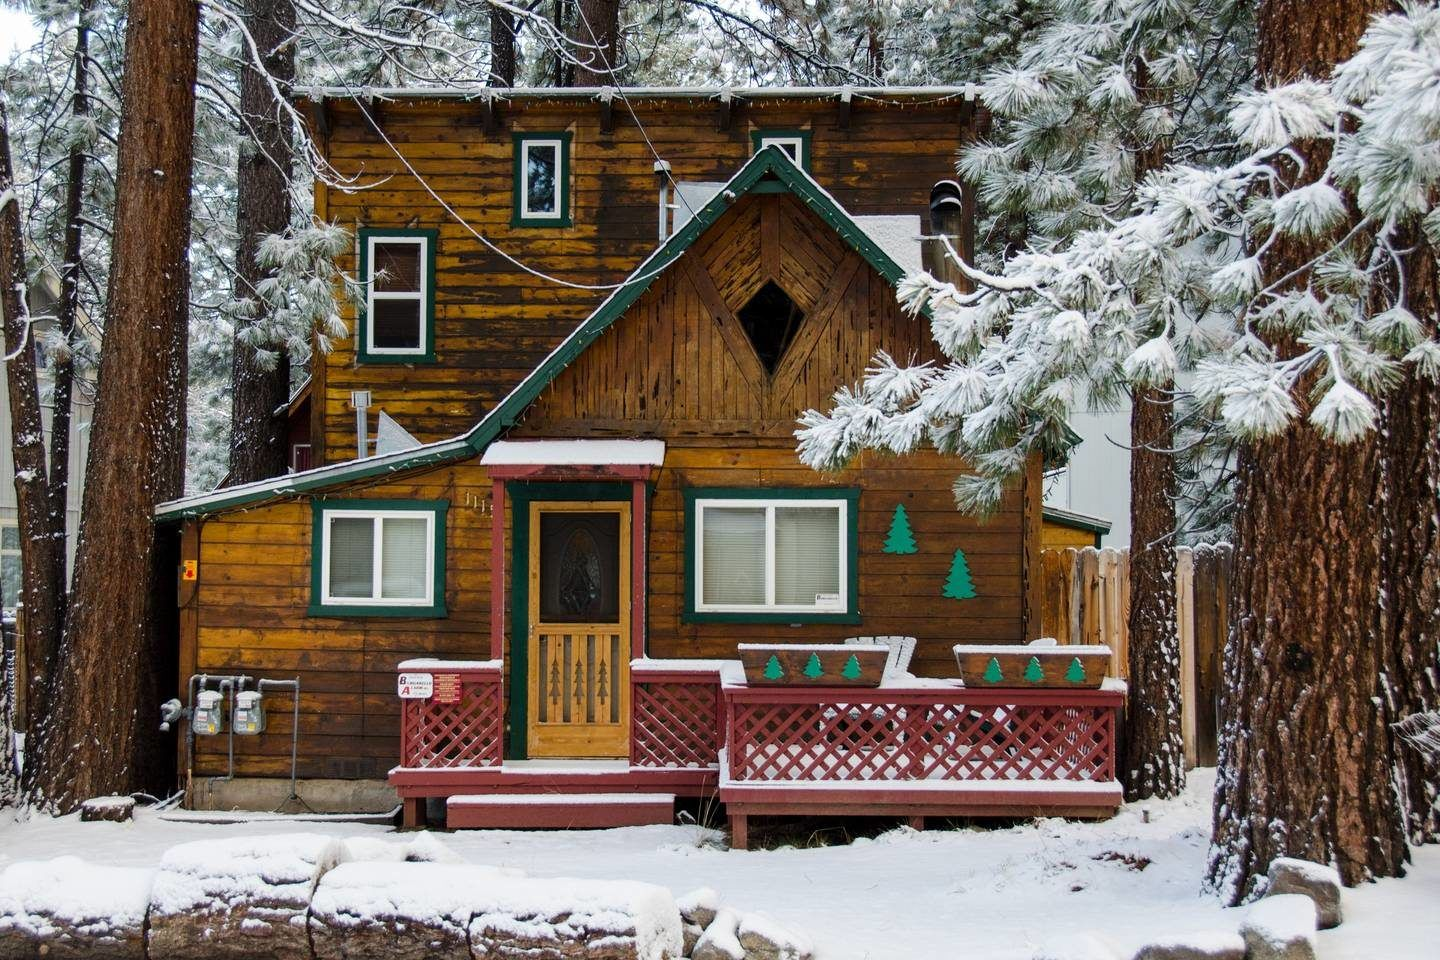 9 Cozy South Lake Tahoe Cabins To Rent For Your Ski Trip!